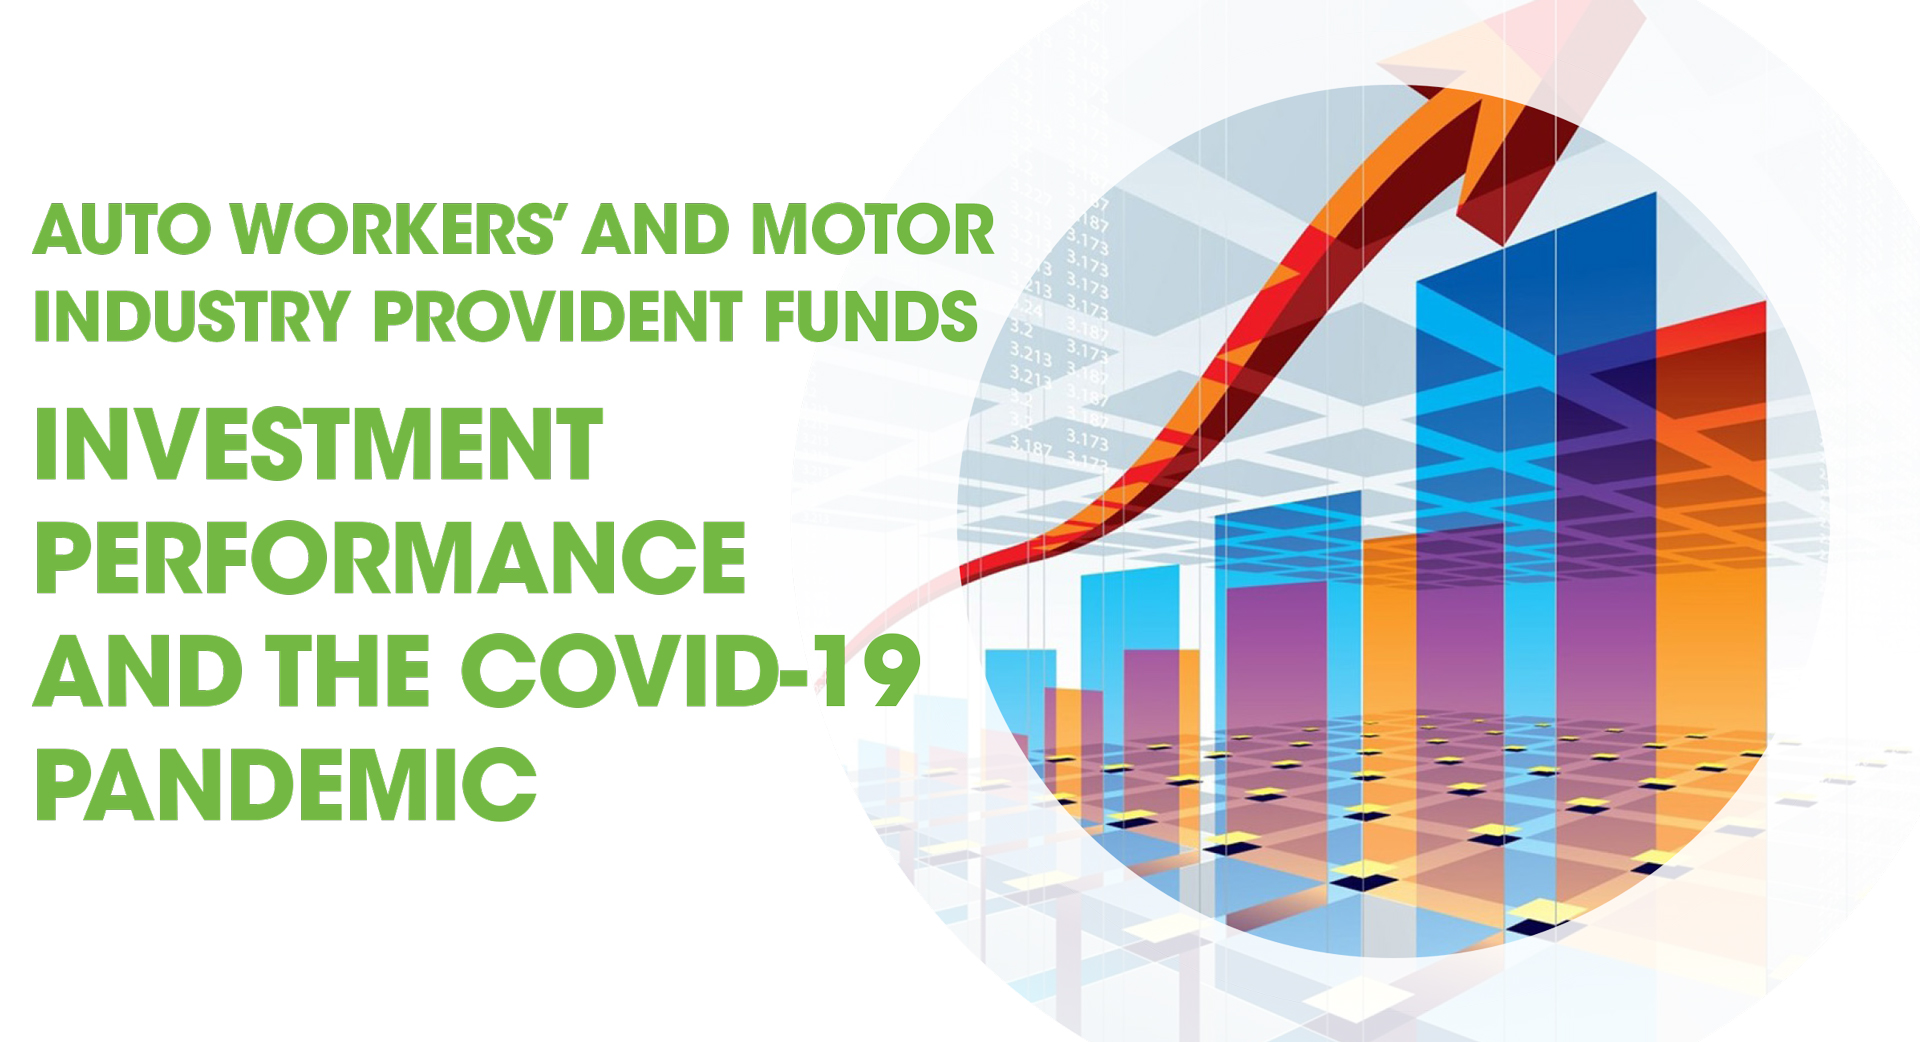 COVID-19 FUND INVESTMENT PERFORMANCE